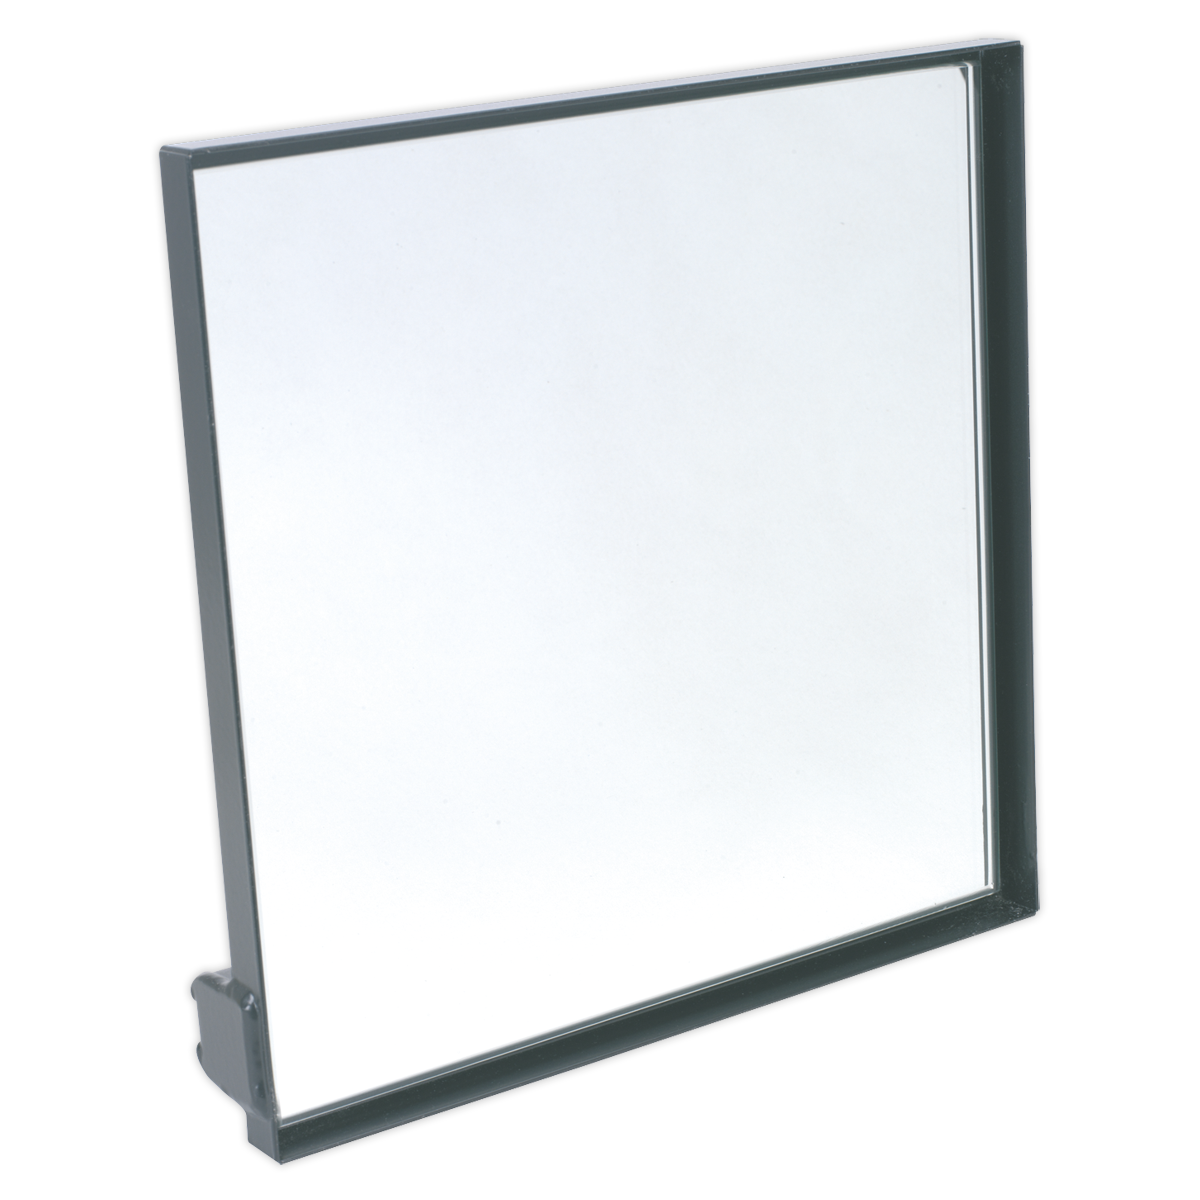 Adaptor Kit for Twin Steering Axle Vehicles for use with GA40